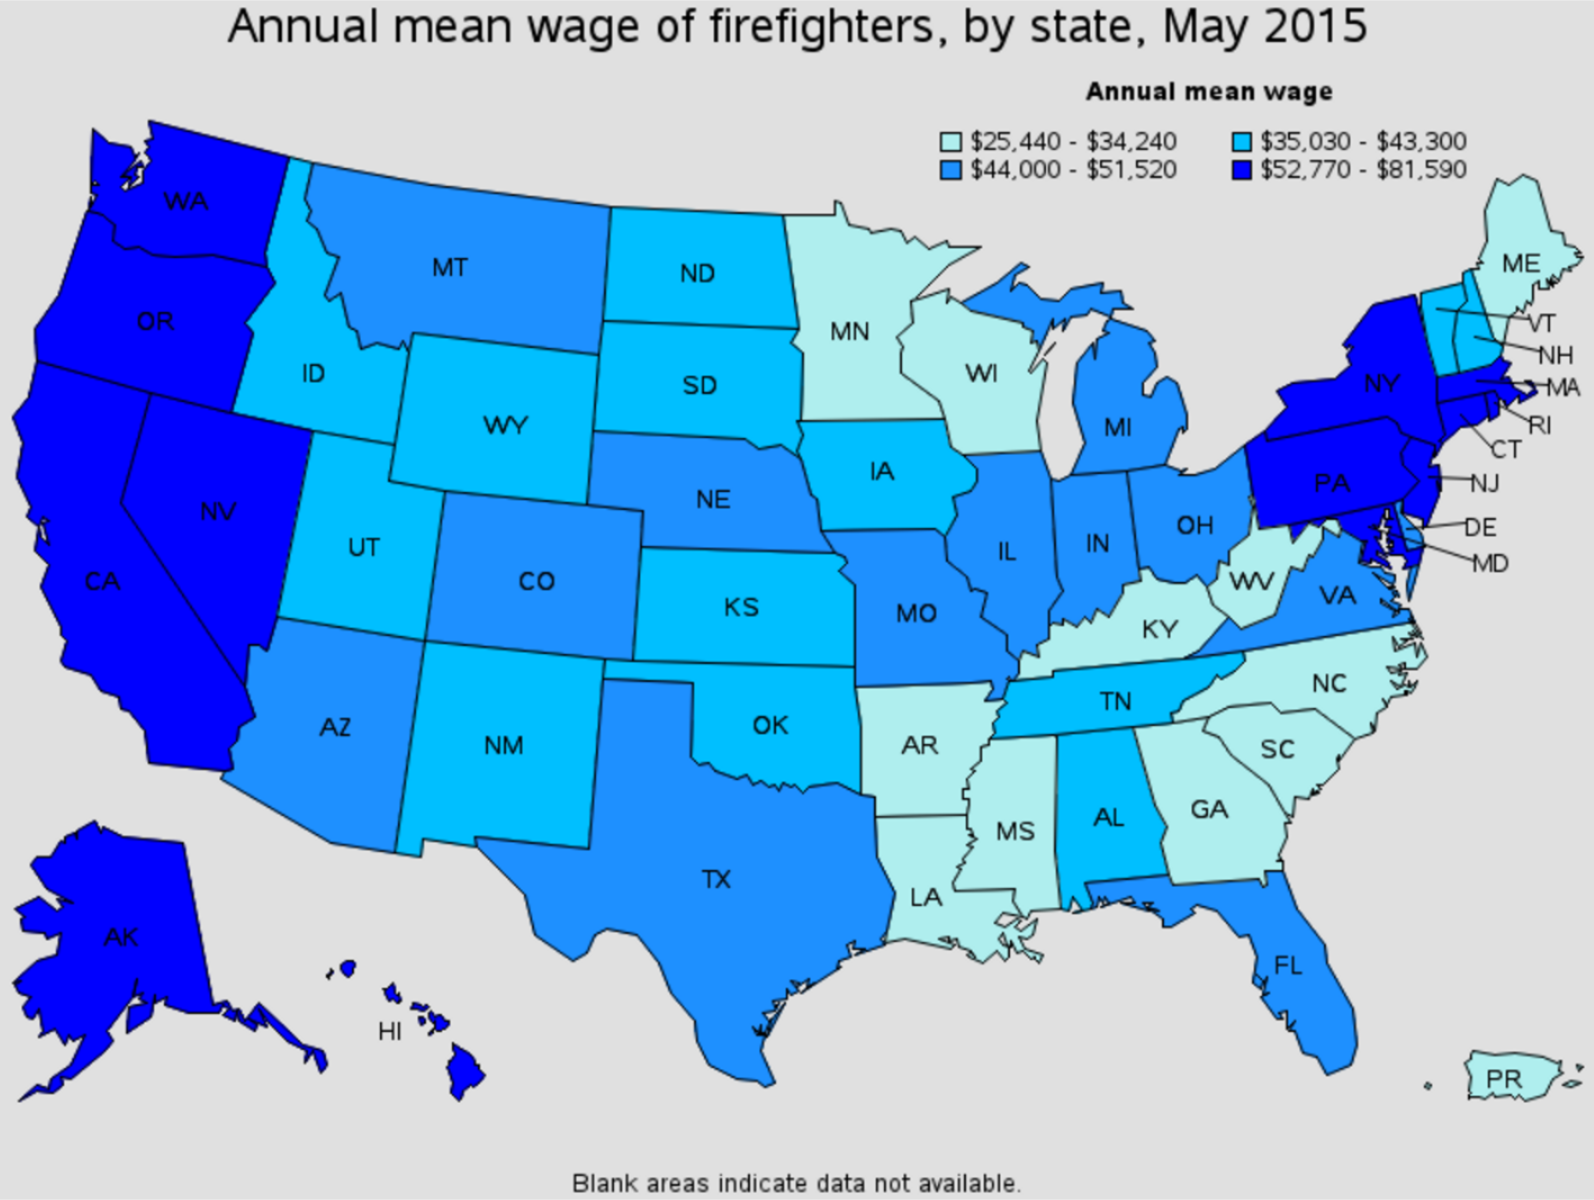 firefighter average salary by state Syracuse New York